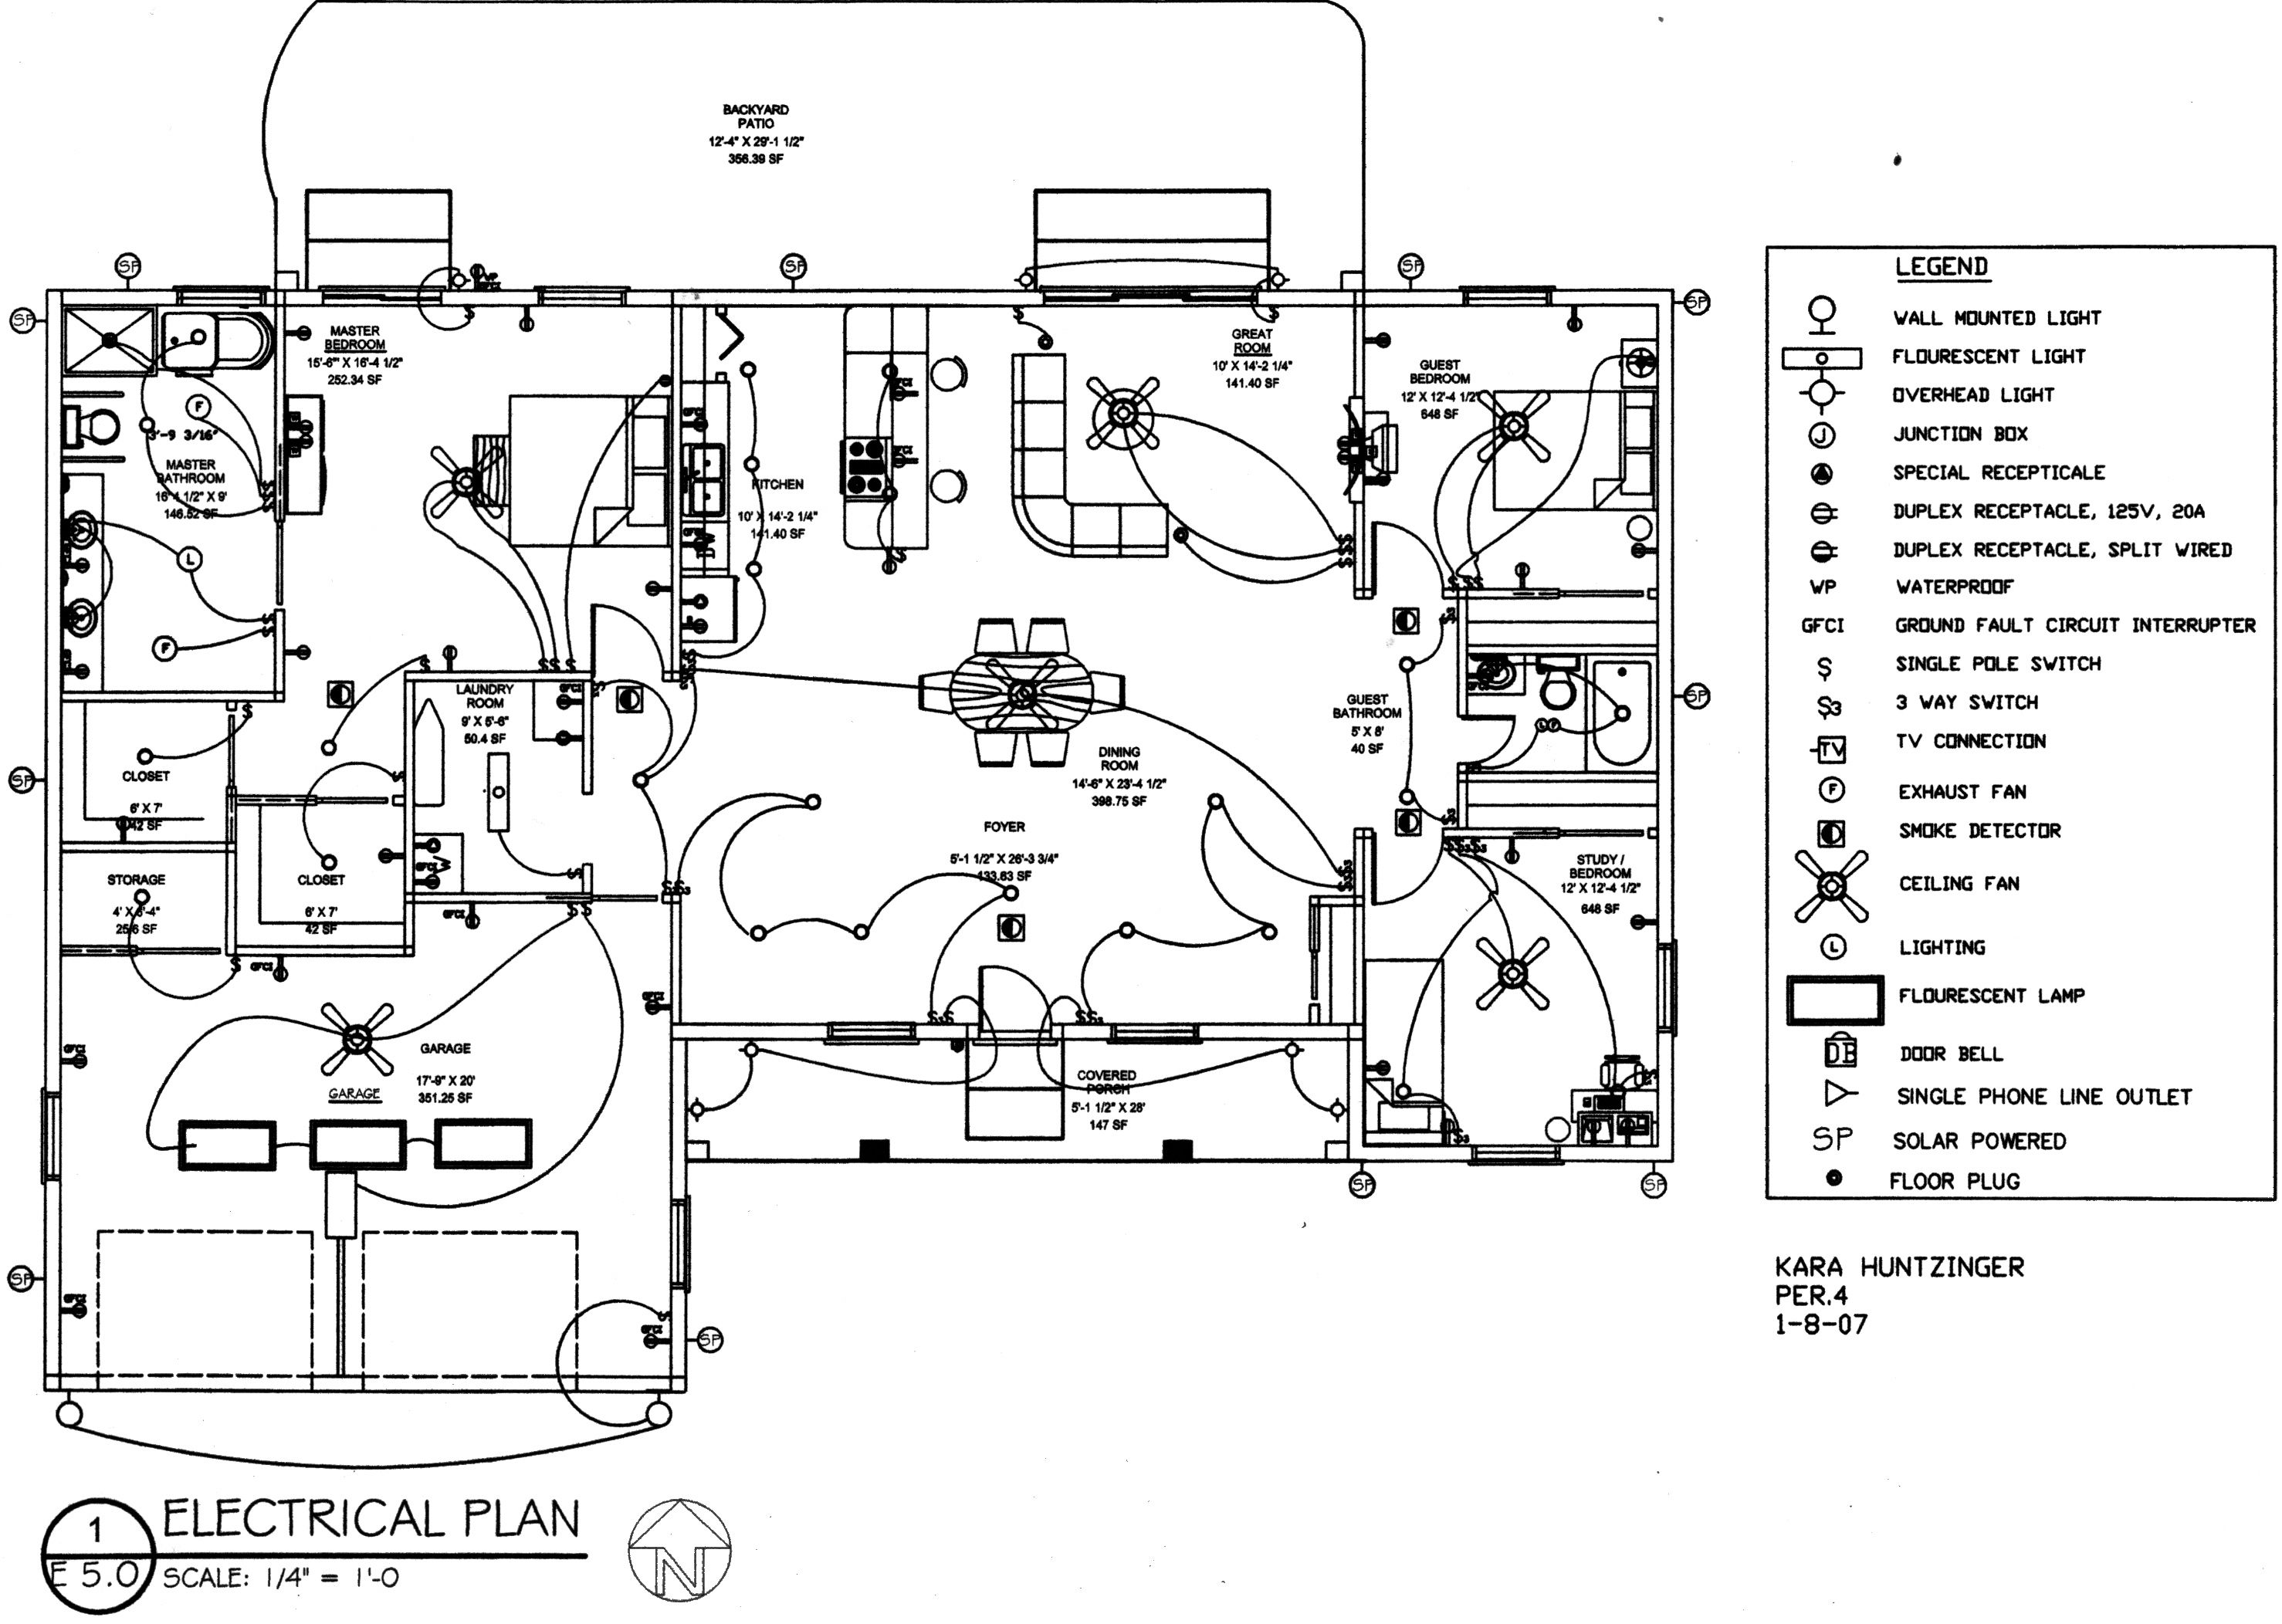 Electrical_Plan_by_German_Blood.jpg (2956×2104